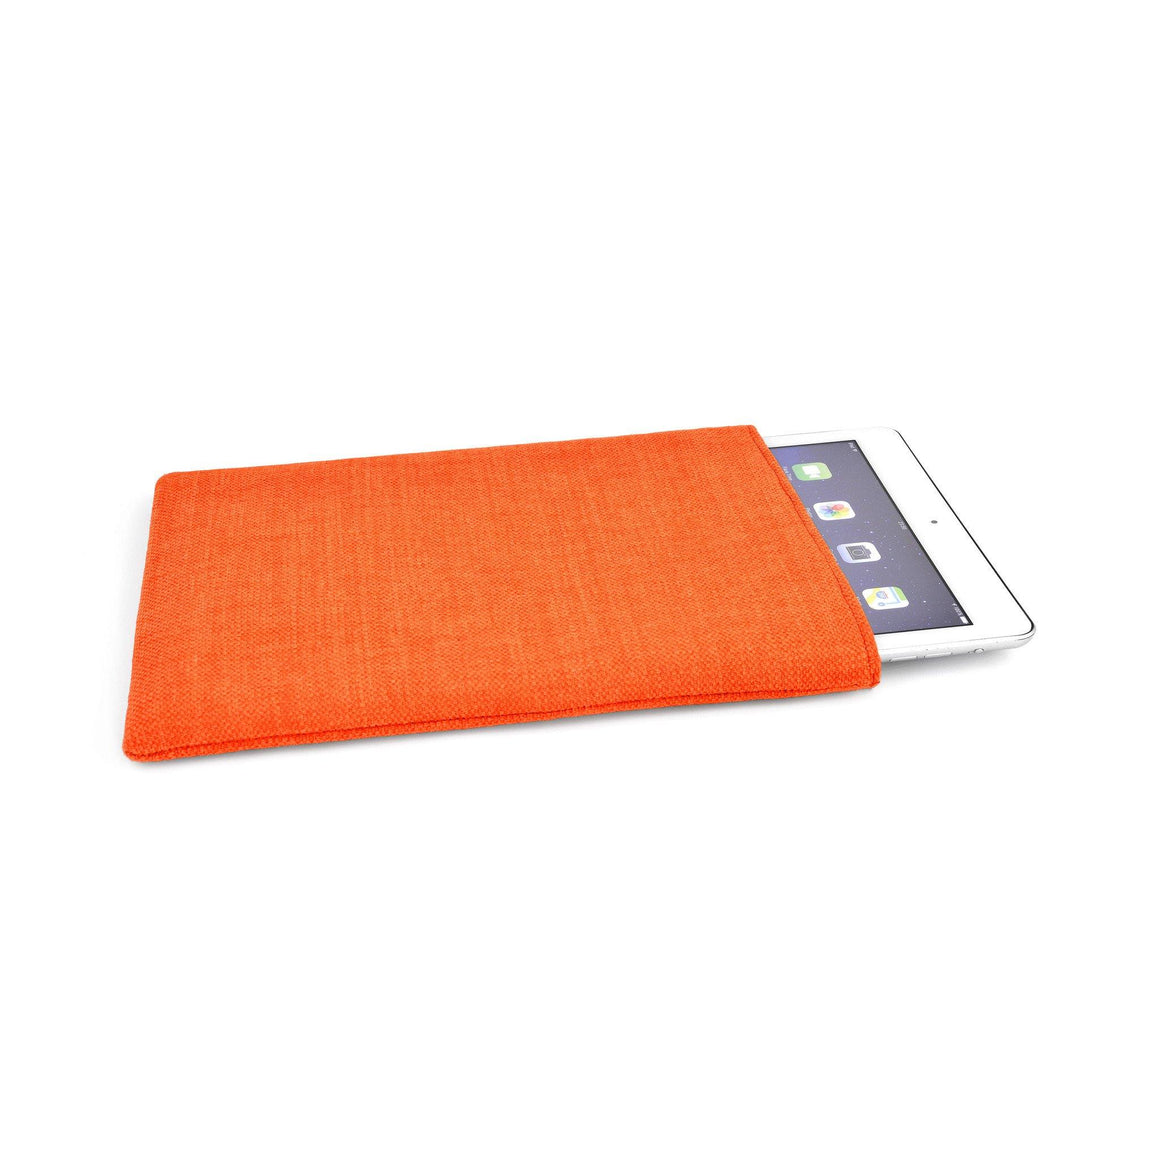 iPad Linen Tangerine - Wrappers UK